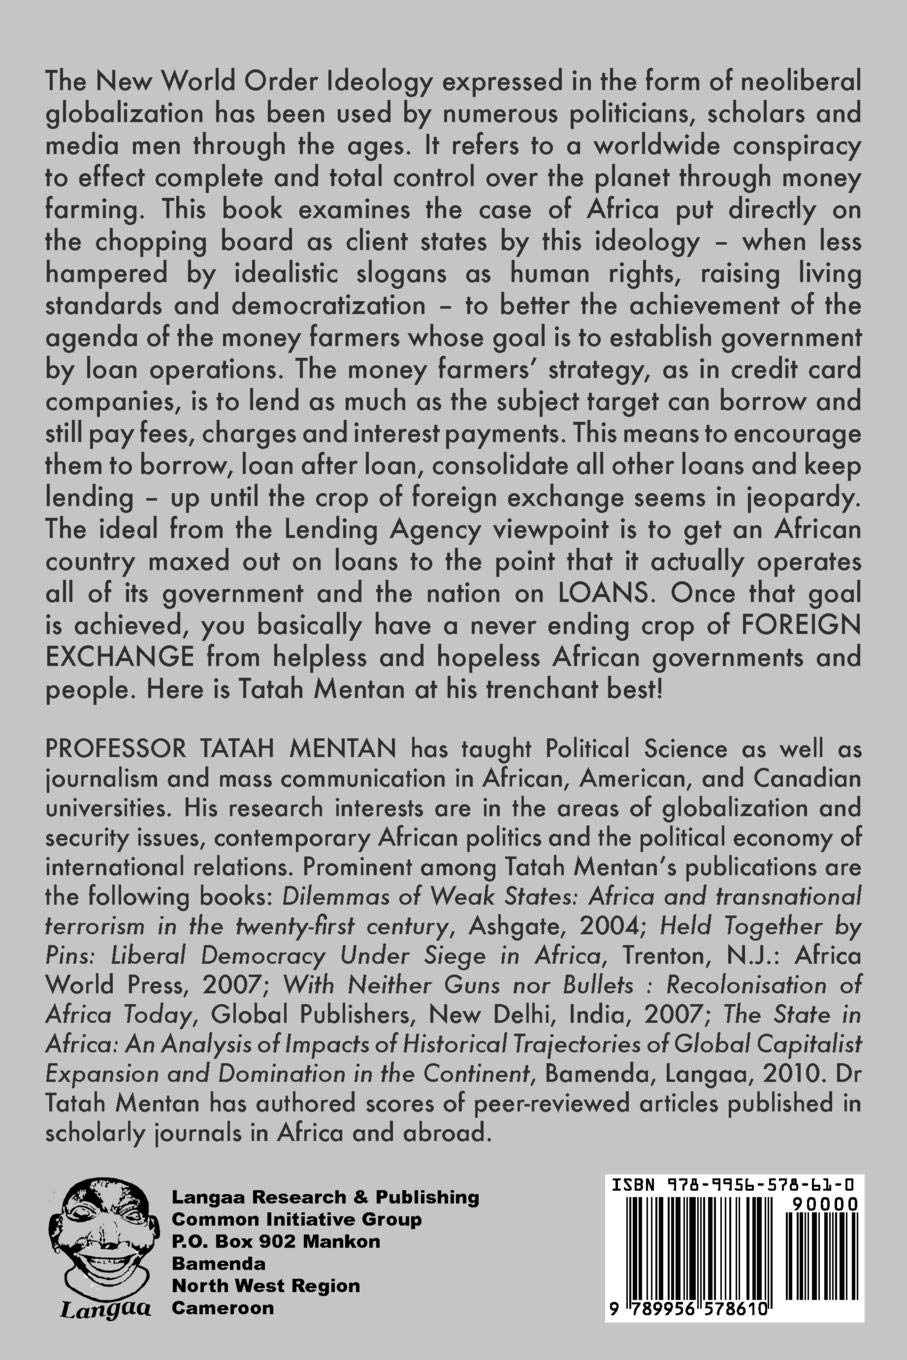 The New World Order Ideology and Africa. Understanding and ...